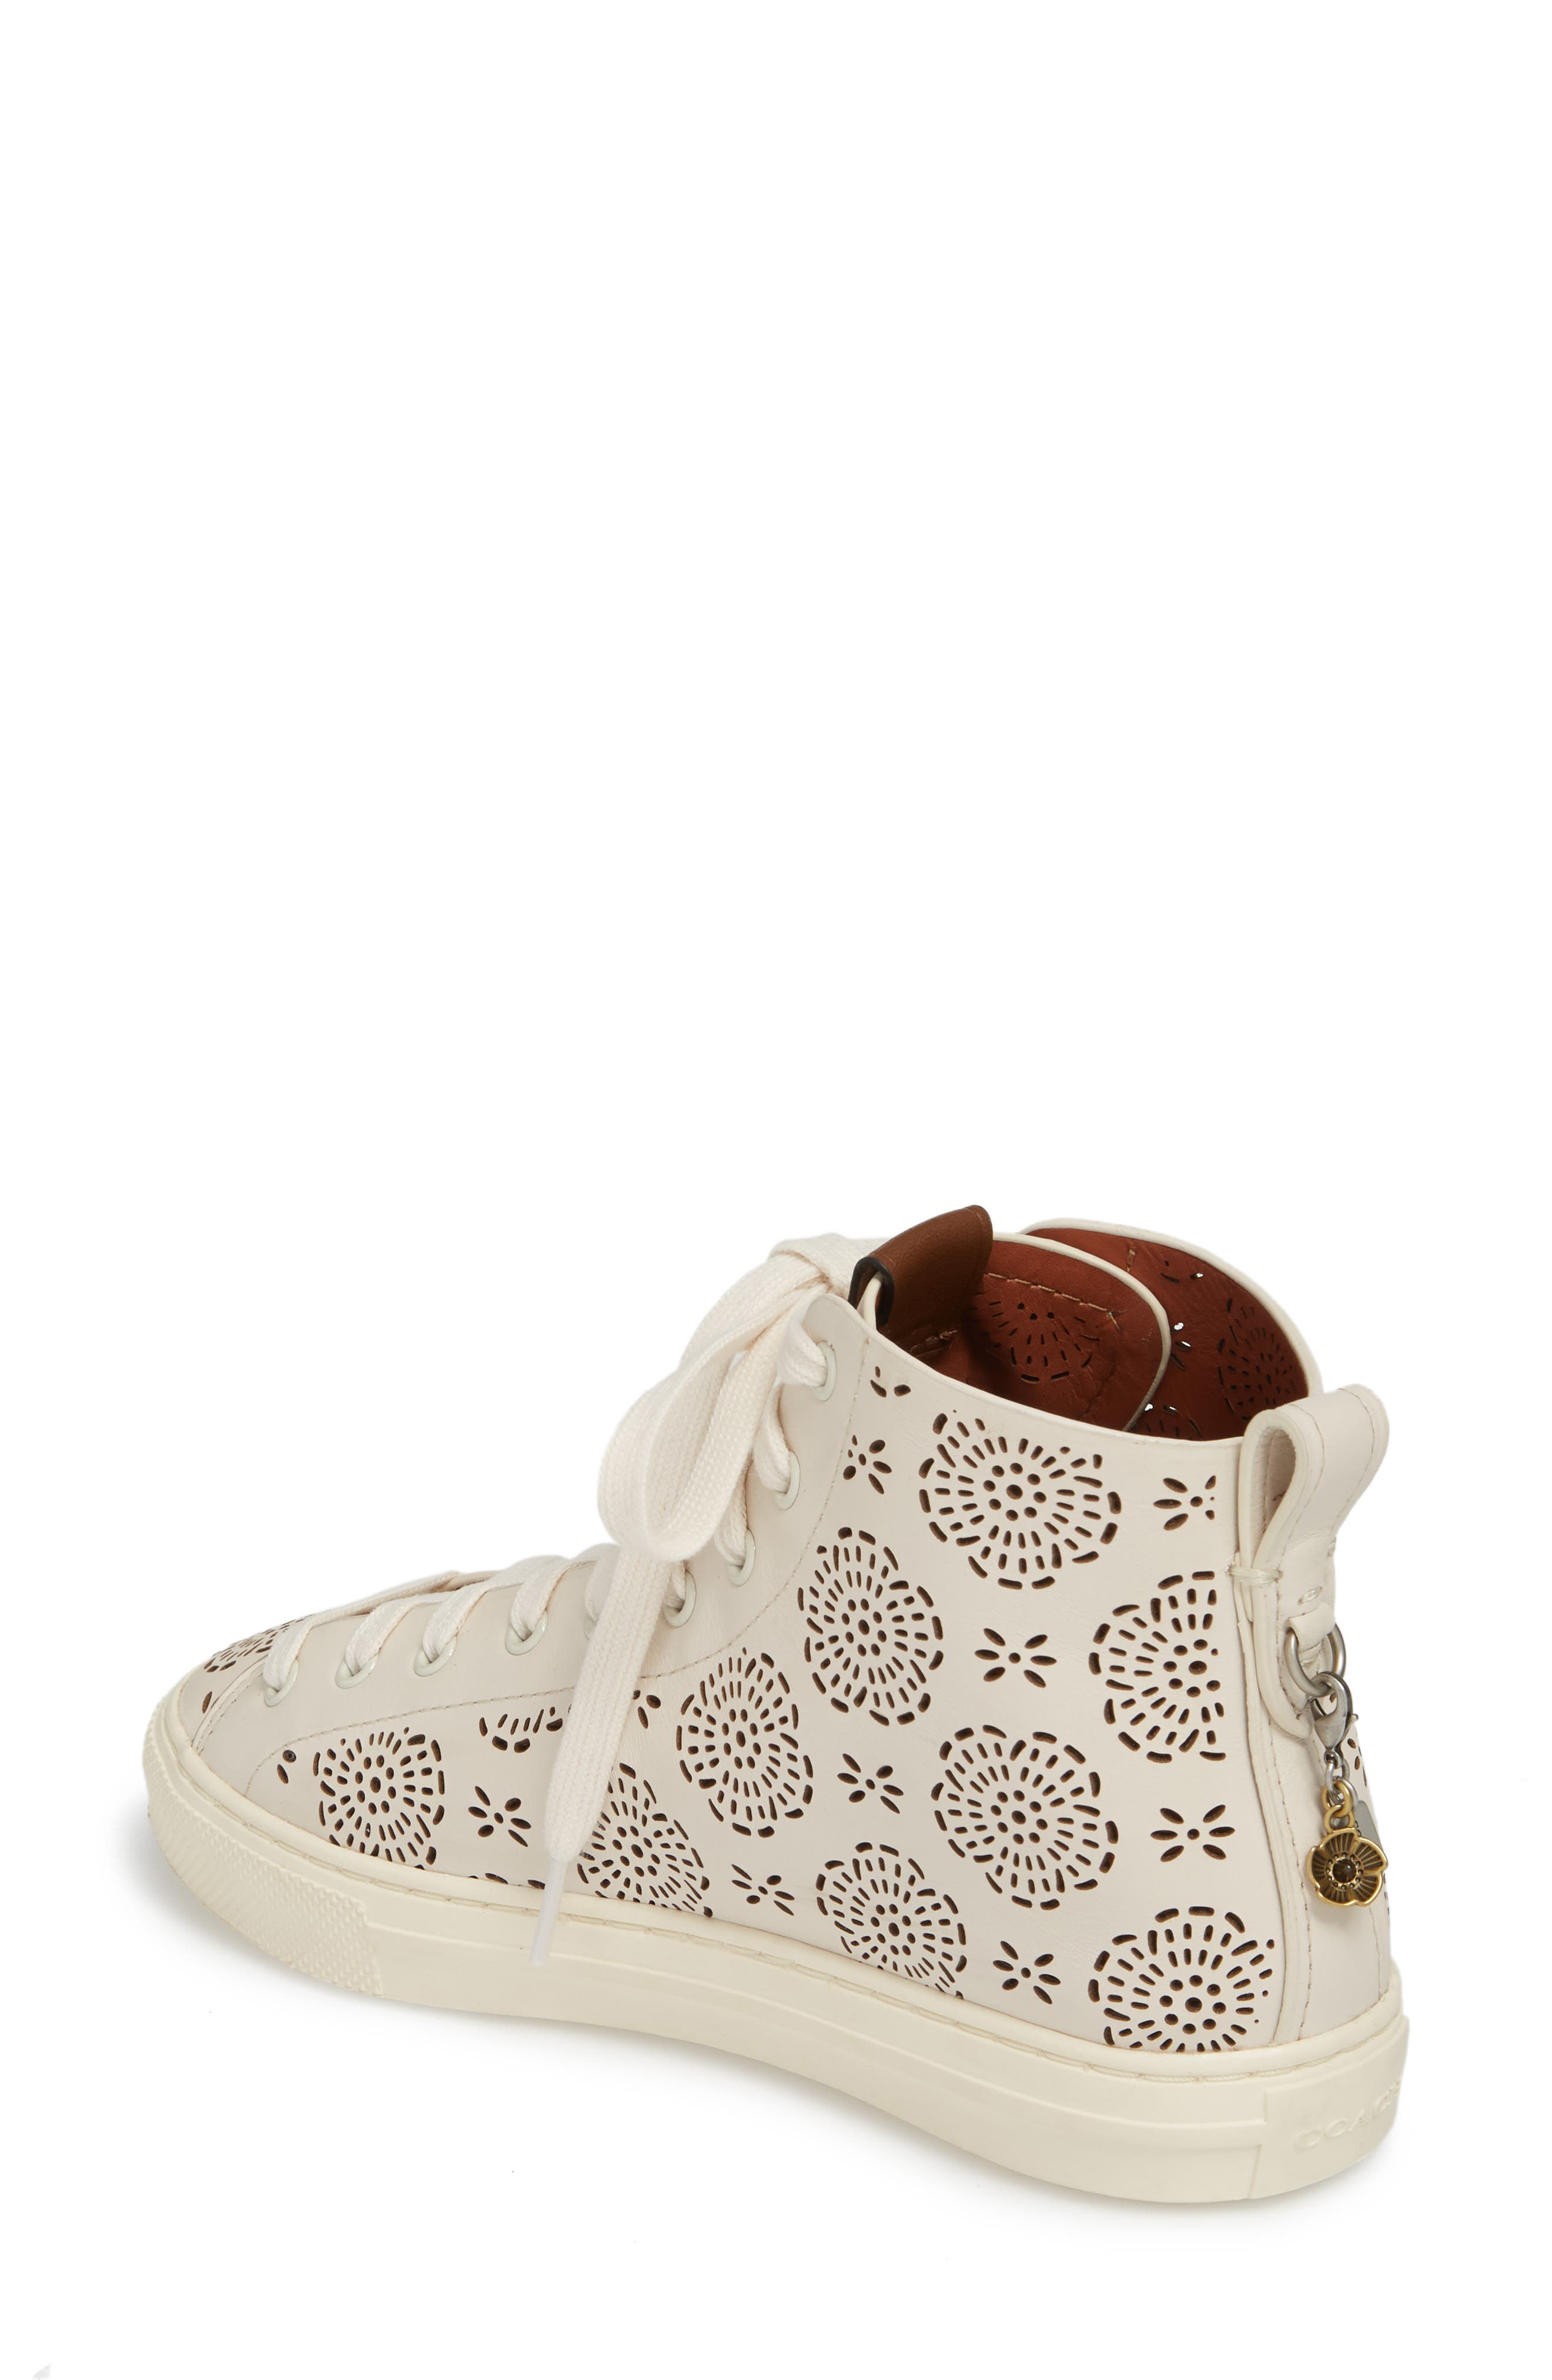 Tea Rose Cutout High Top Sneaker,                             Alternate thumbnail 2, color,                             115